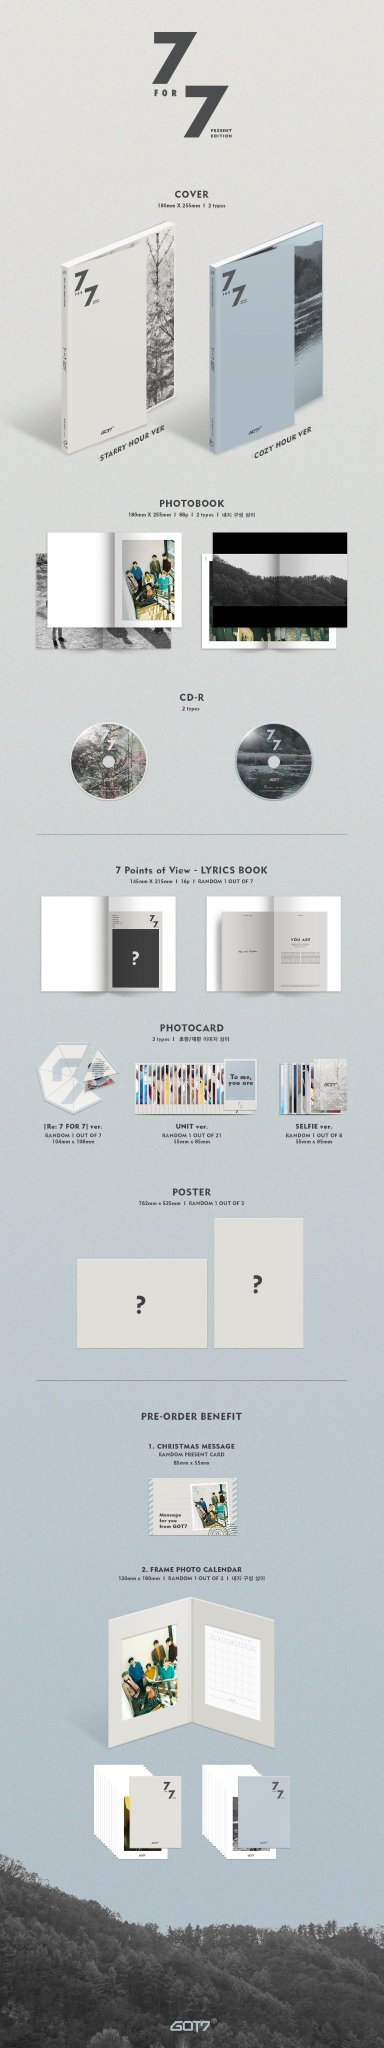 got7-7-for-7-album.jpg